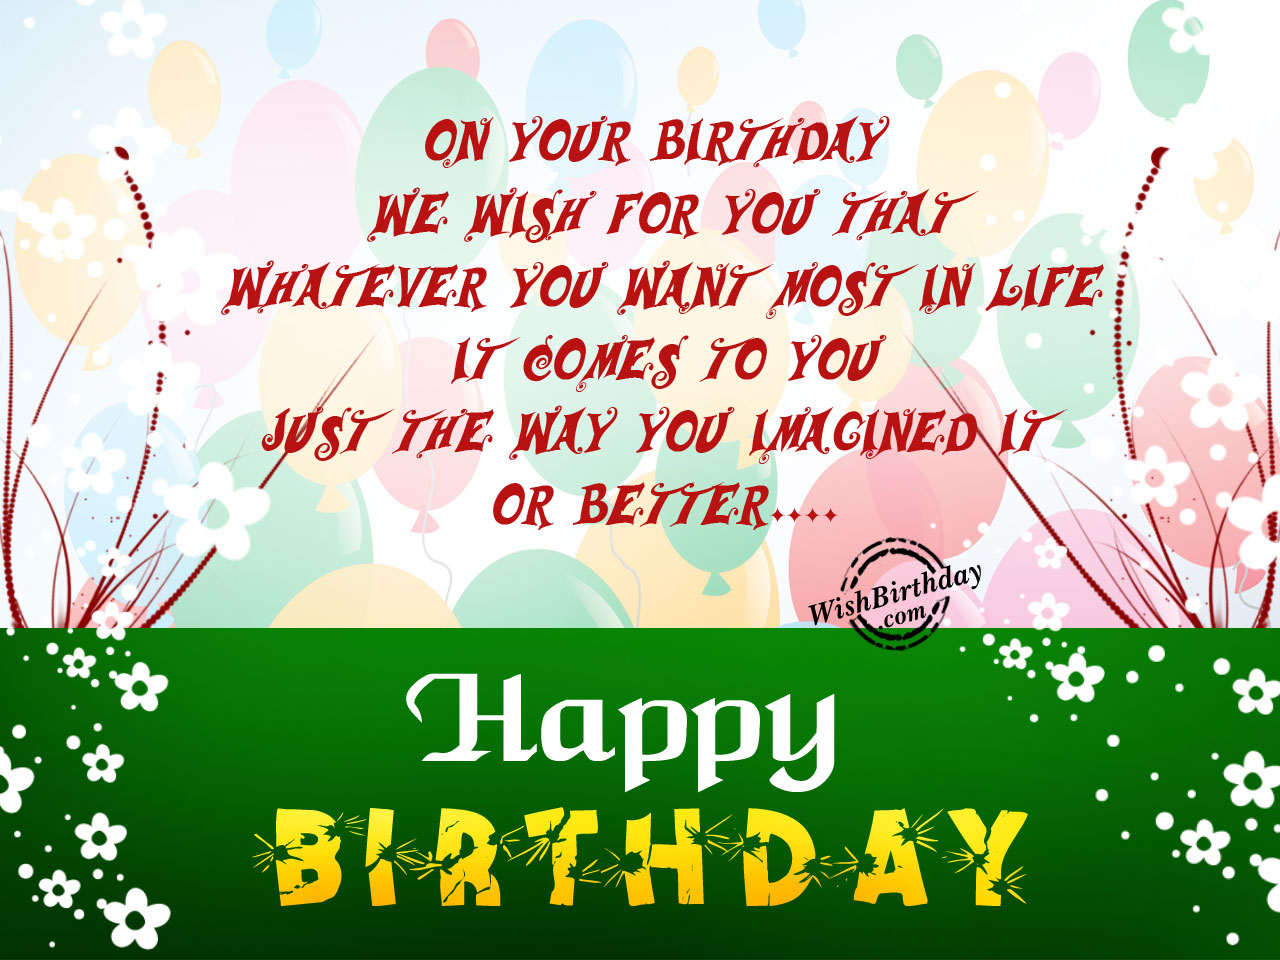 wish you happy birthday pictures ; On-your-birthday-we-wish-youHappy-Birthday-WB10